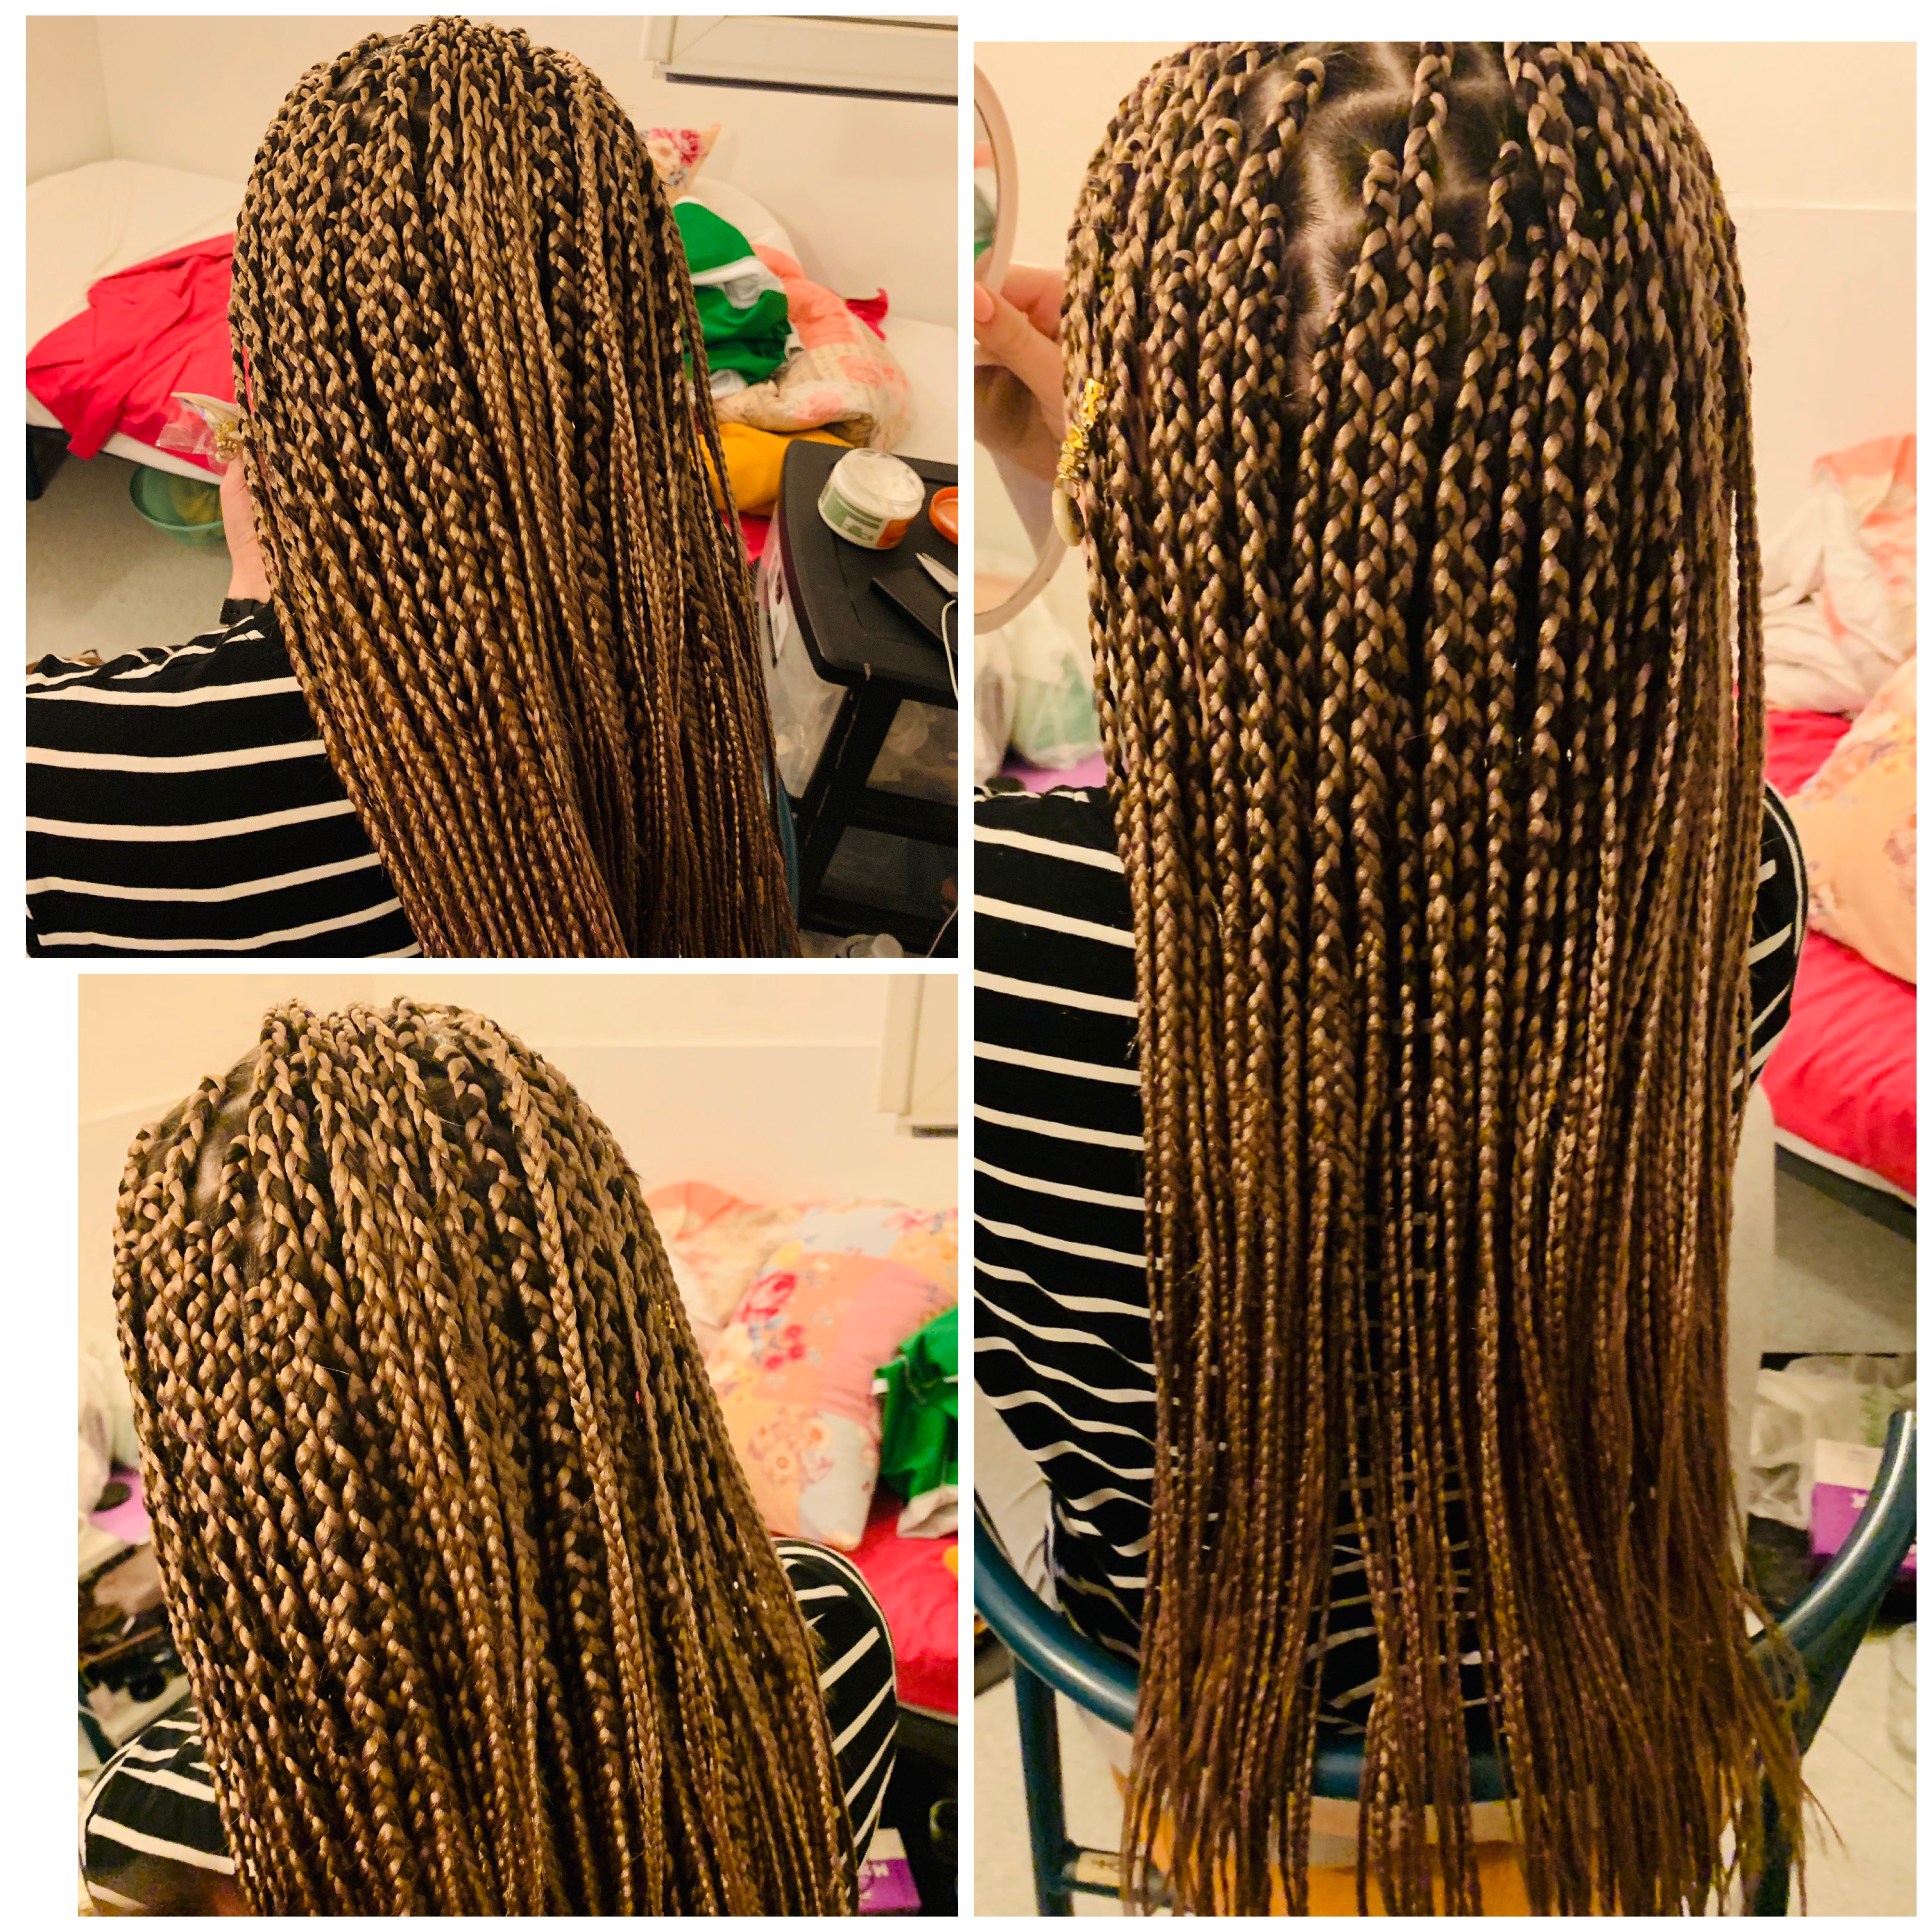 salon de coiffure afro tresse tresses box braids crochet braids vanilles tissages paris 75 77 78 91 92 93 94 95 CMAIPGGZ